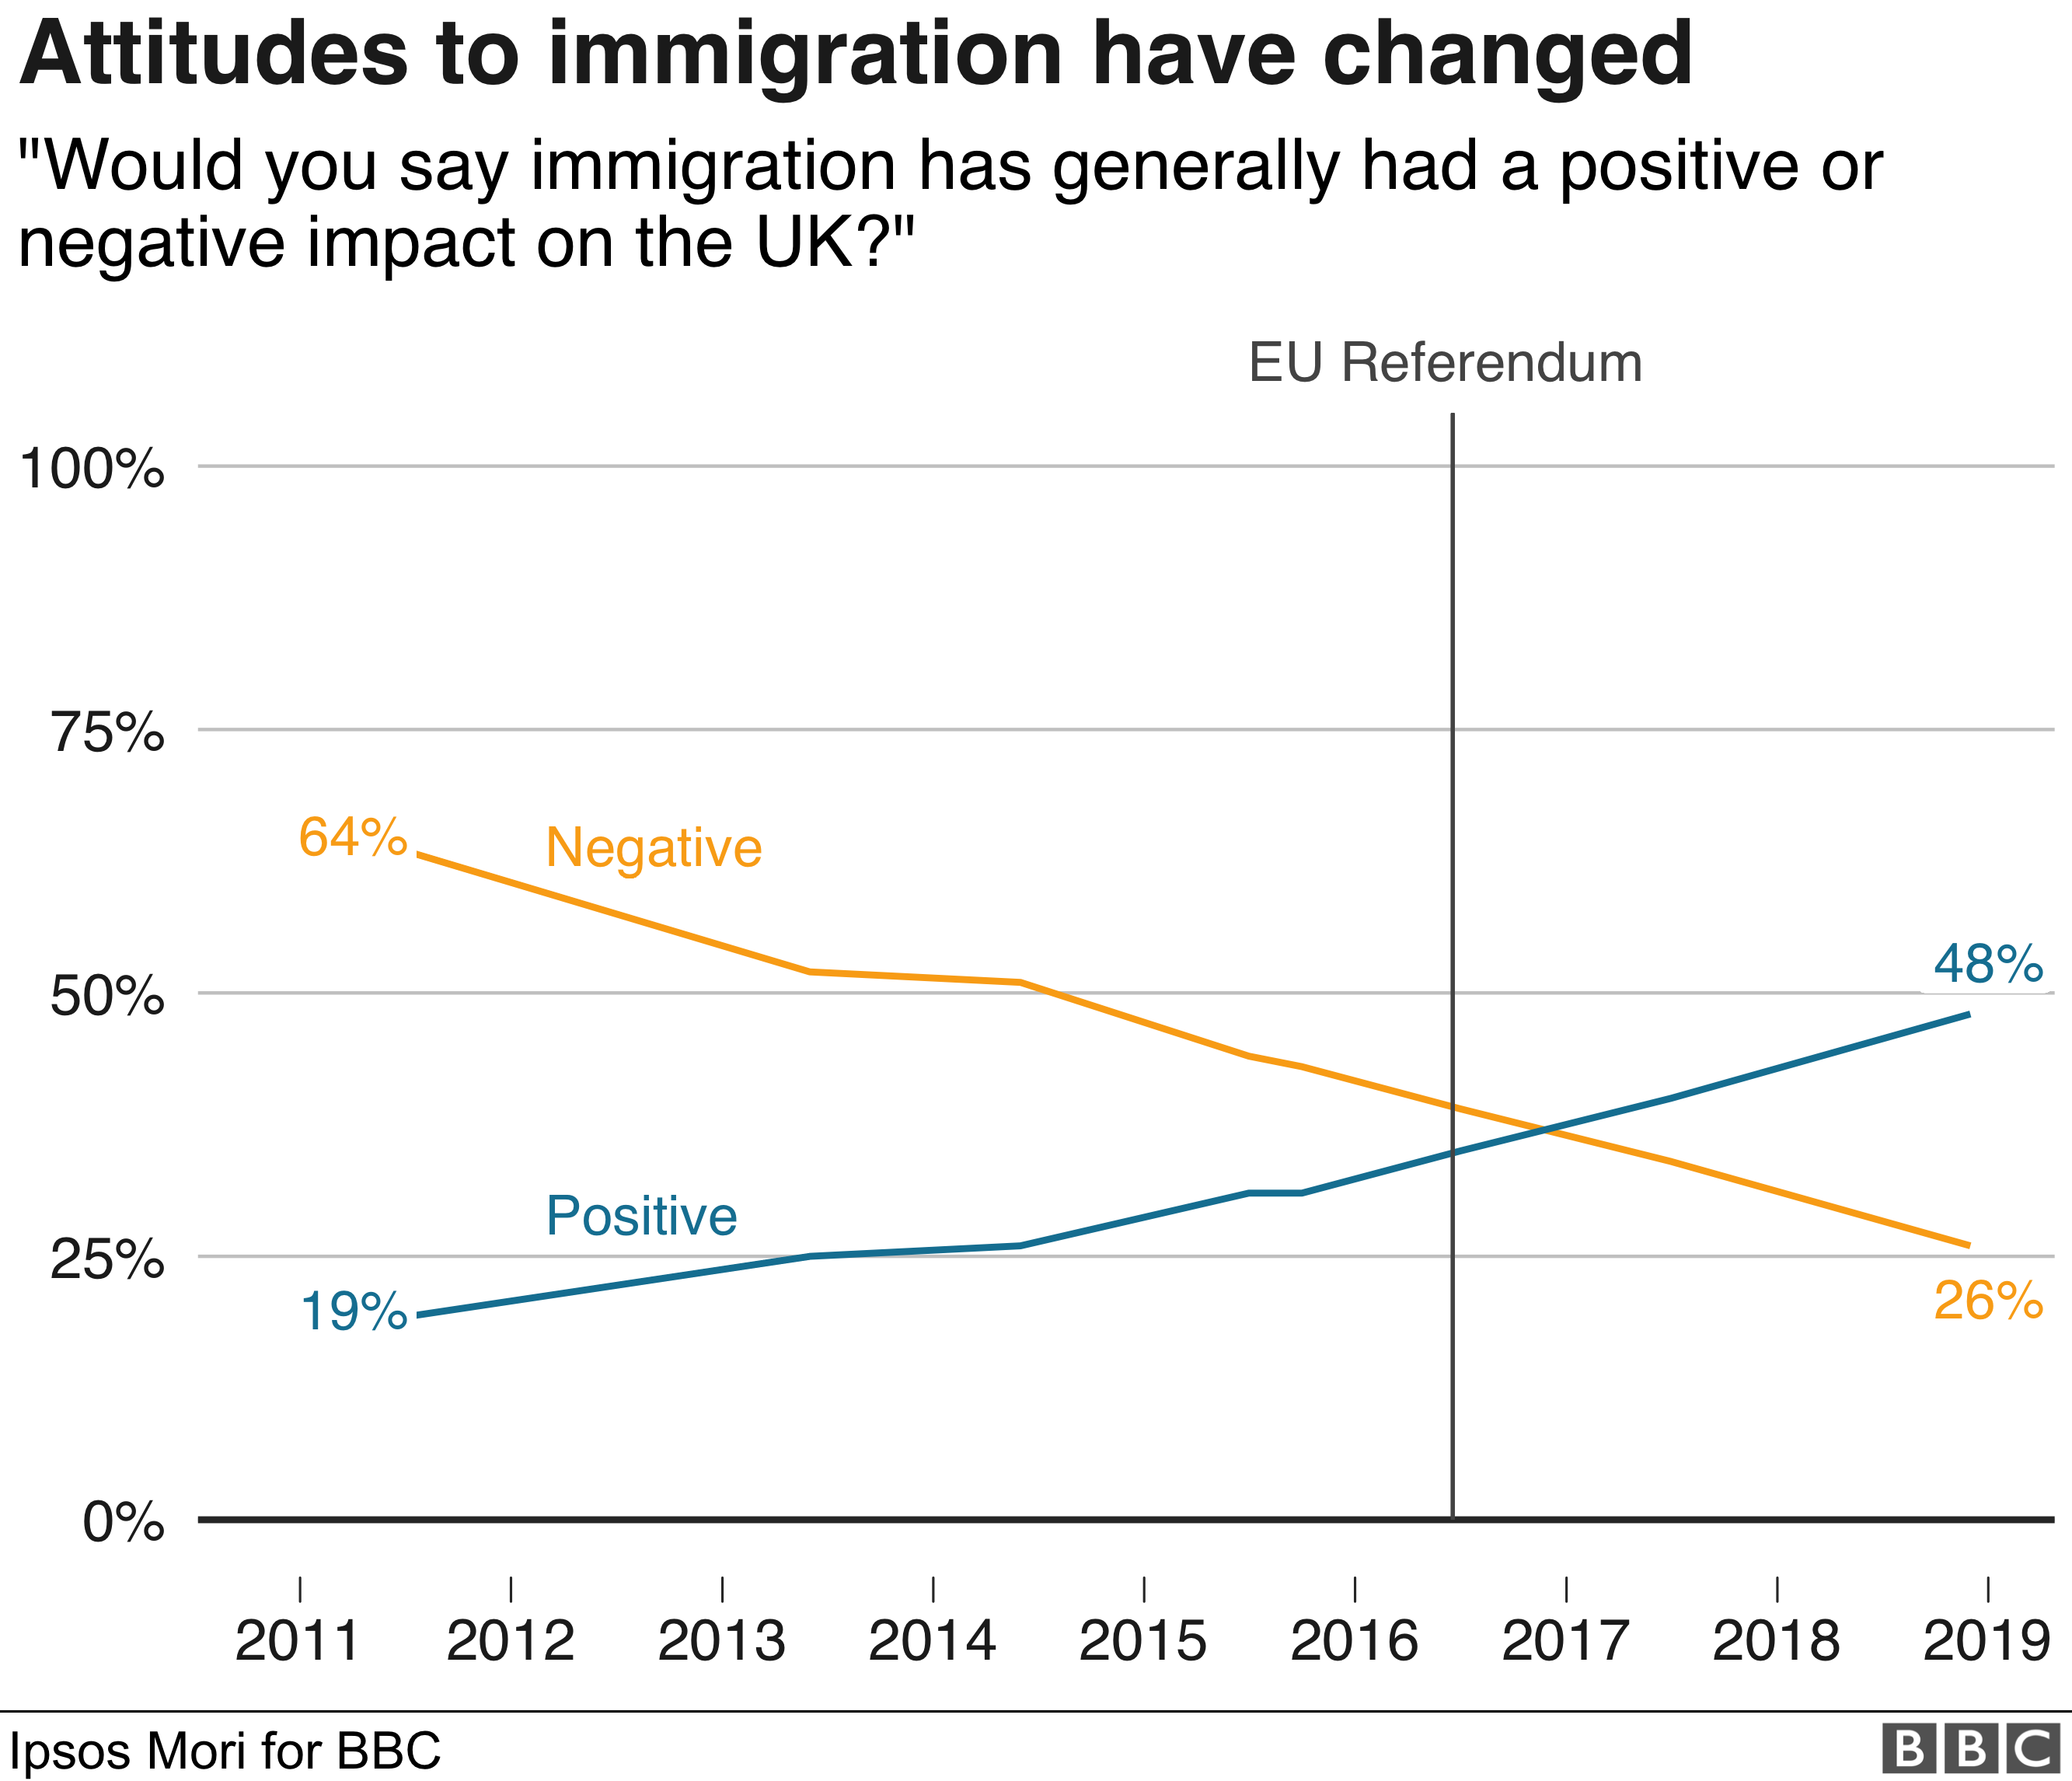 Line chart showing how attitudes to immigration have changed